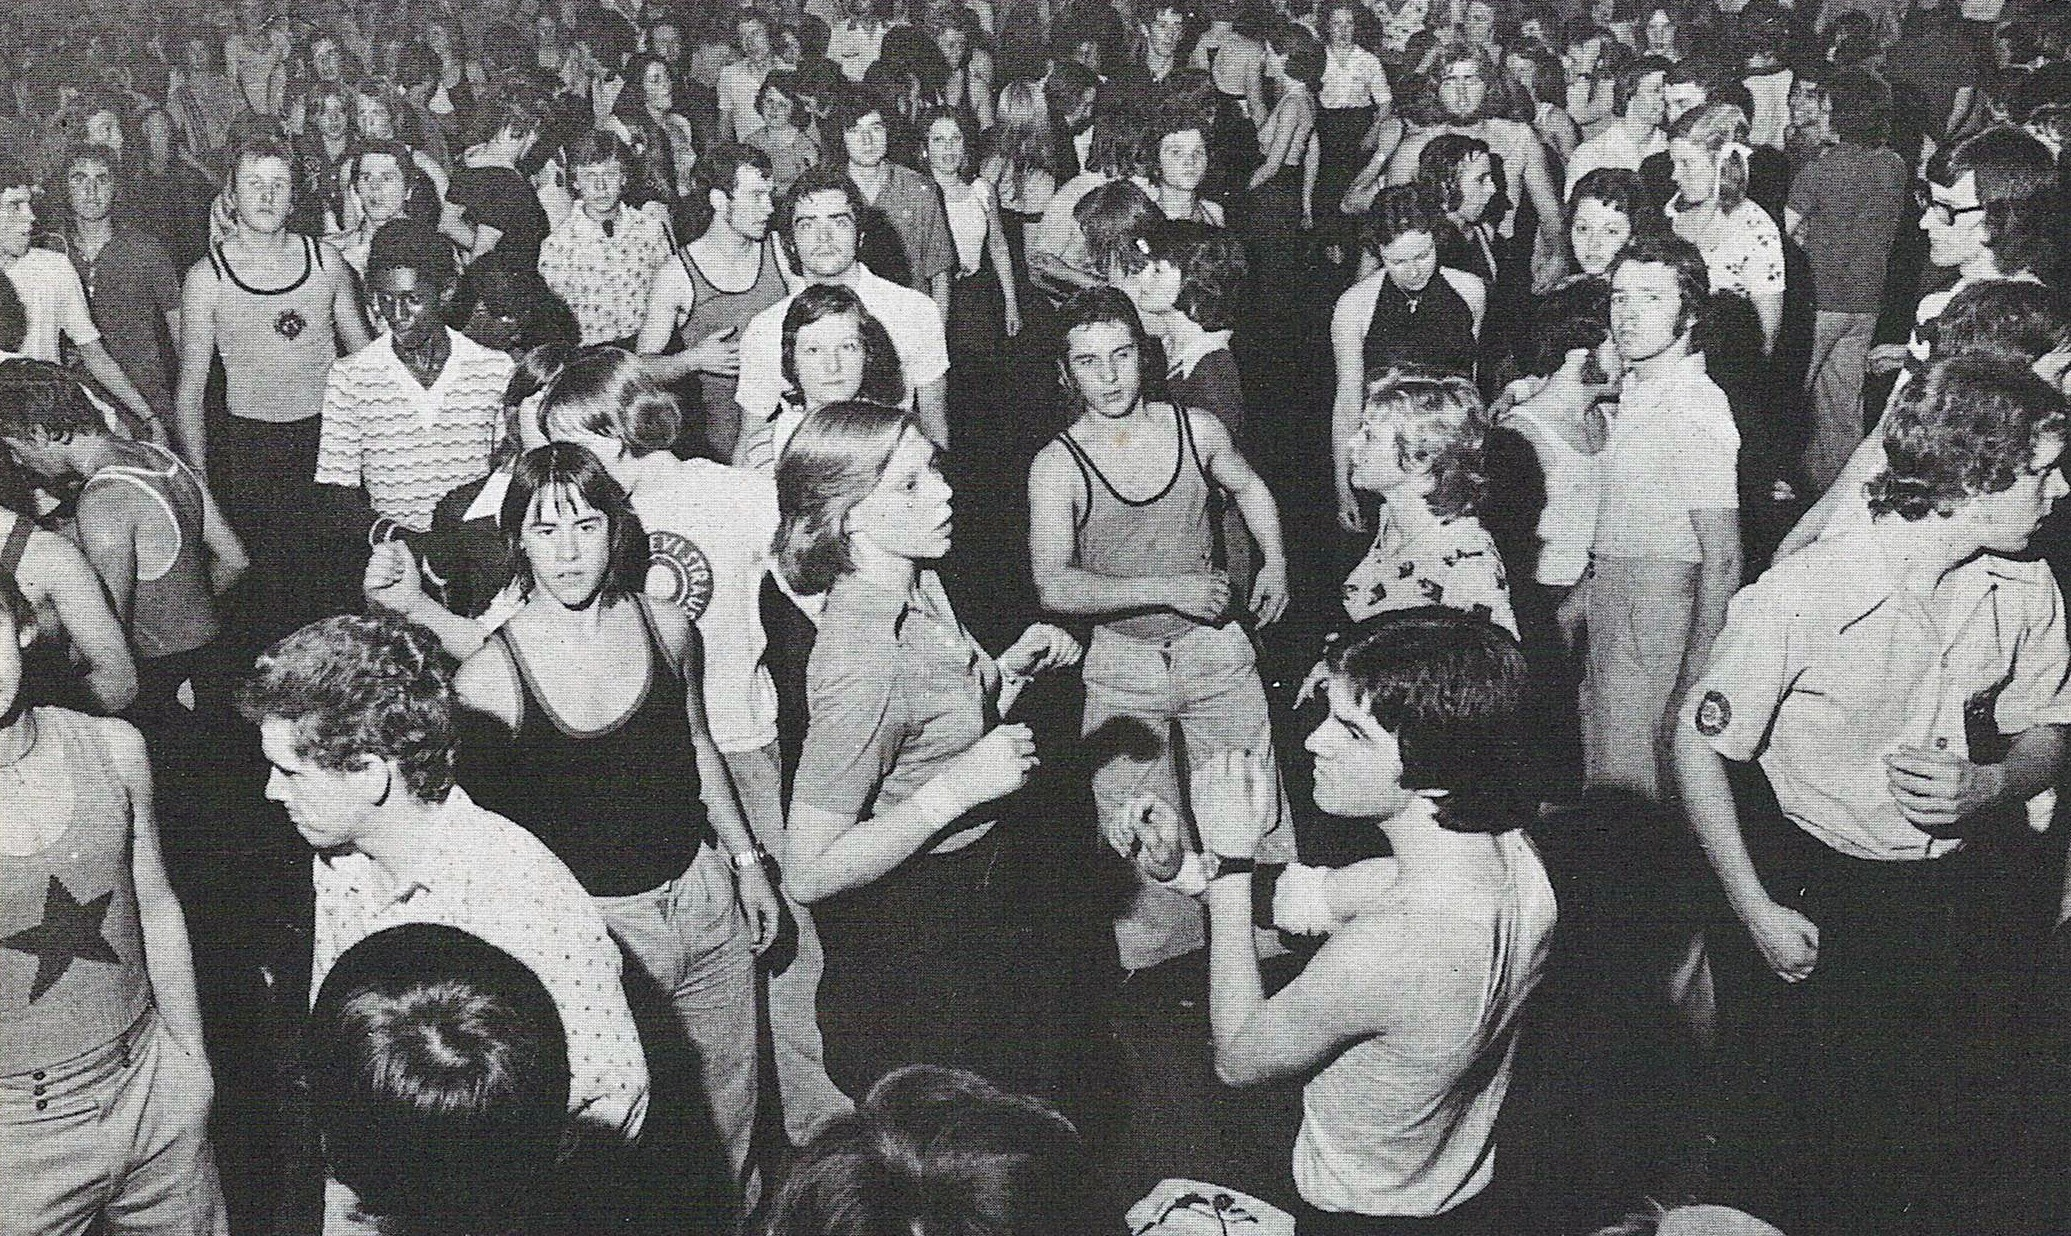 The kids of Northern Soul brought the swelling energy of American